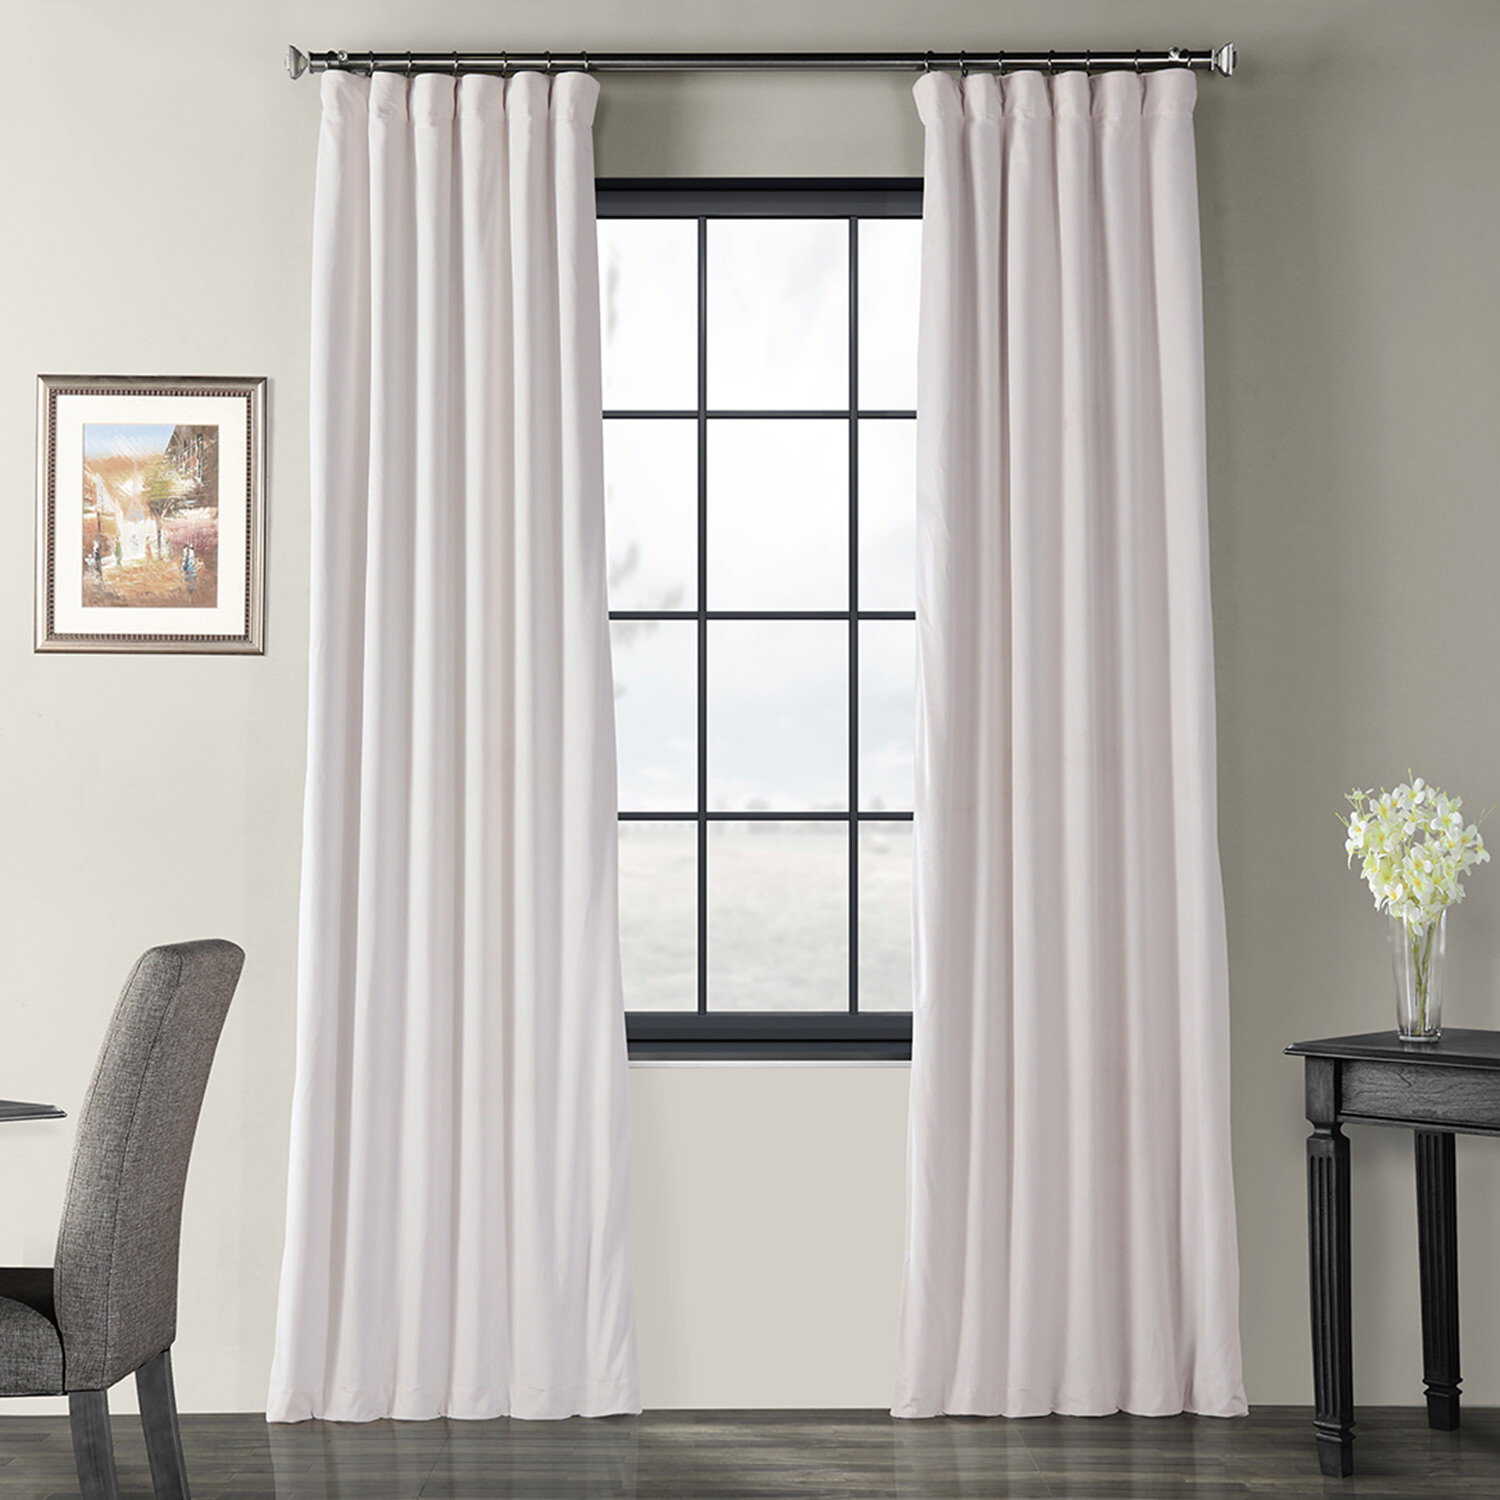 4 Pices Solid Suede Grommet Top Curtain//Panel//Drape Navy Blue Home Fashion